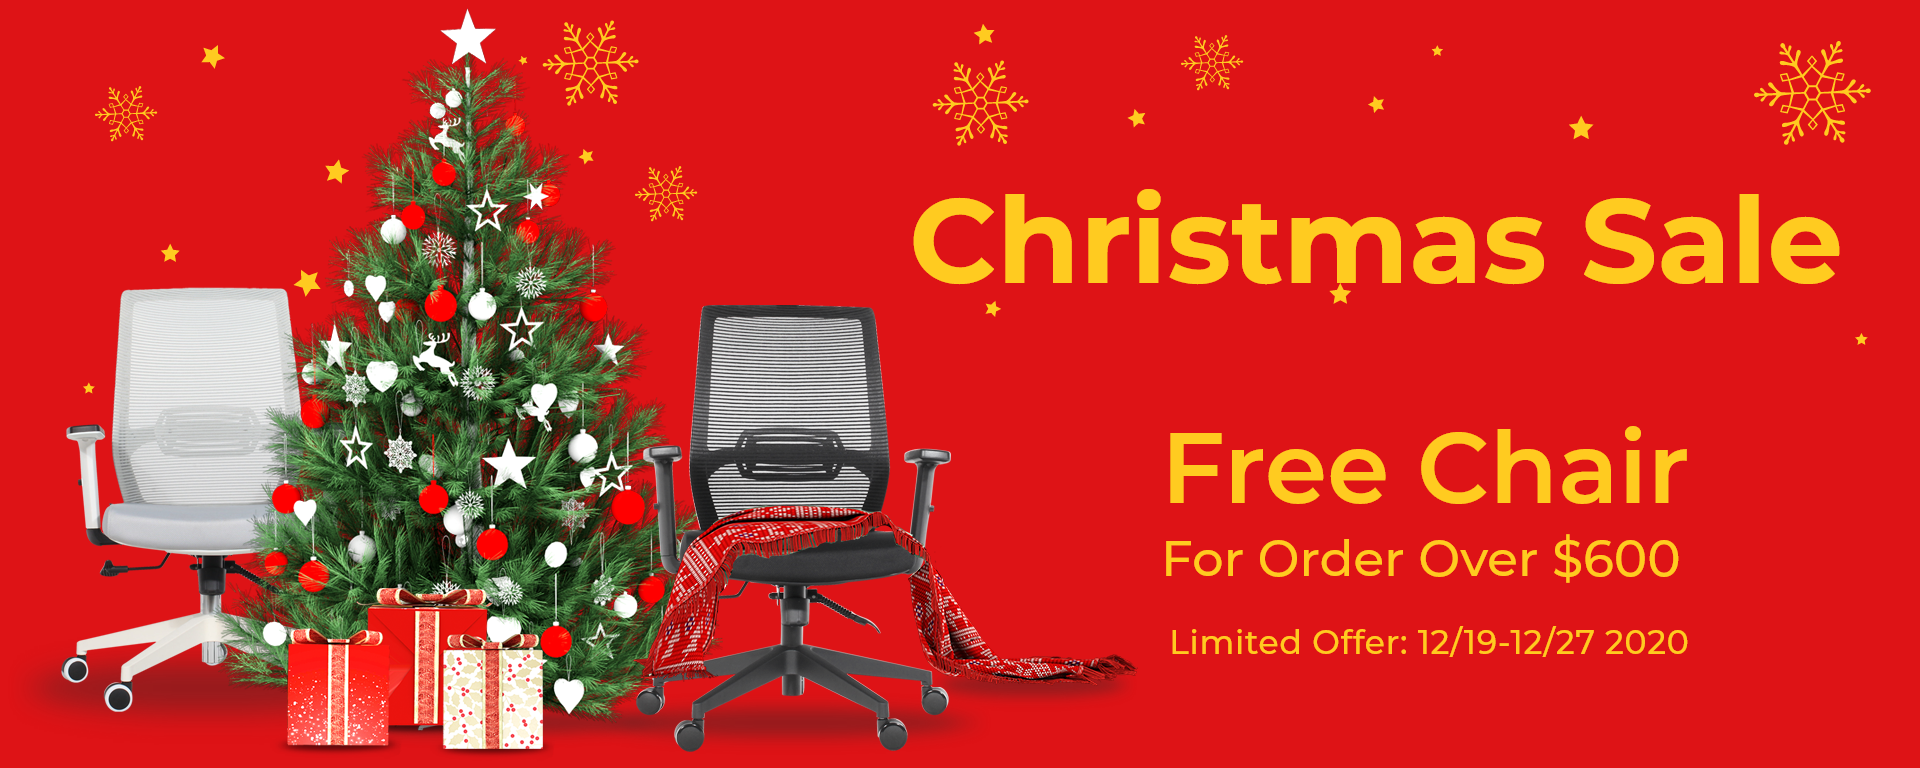 SOLOS Christmas Sale Free Chair